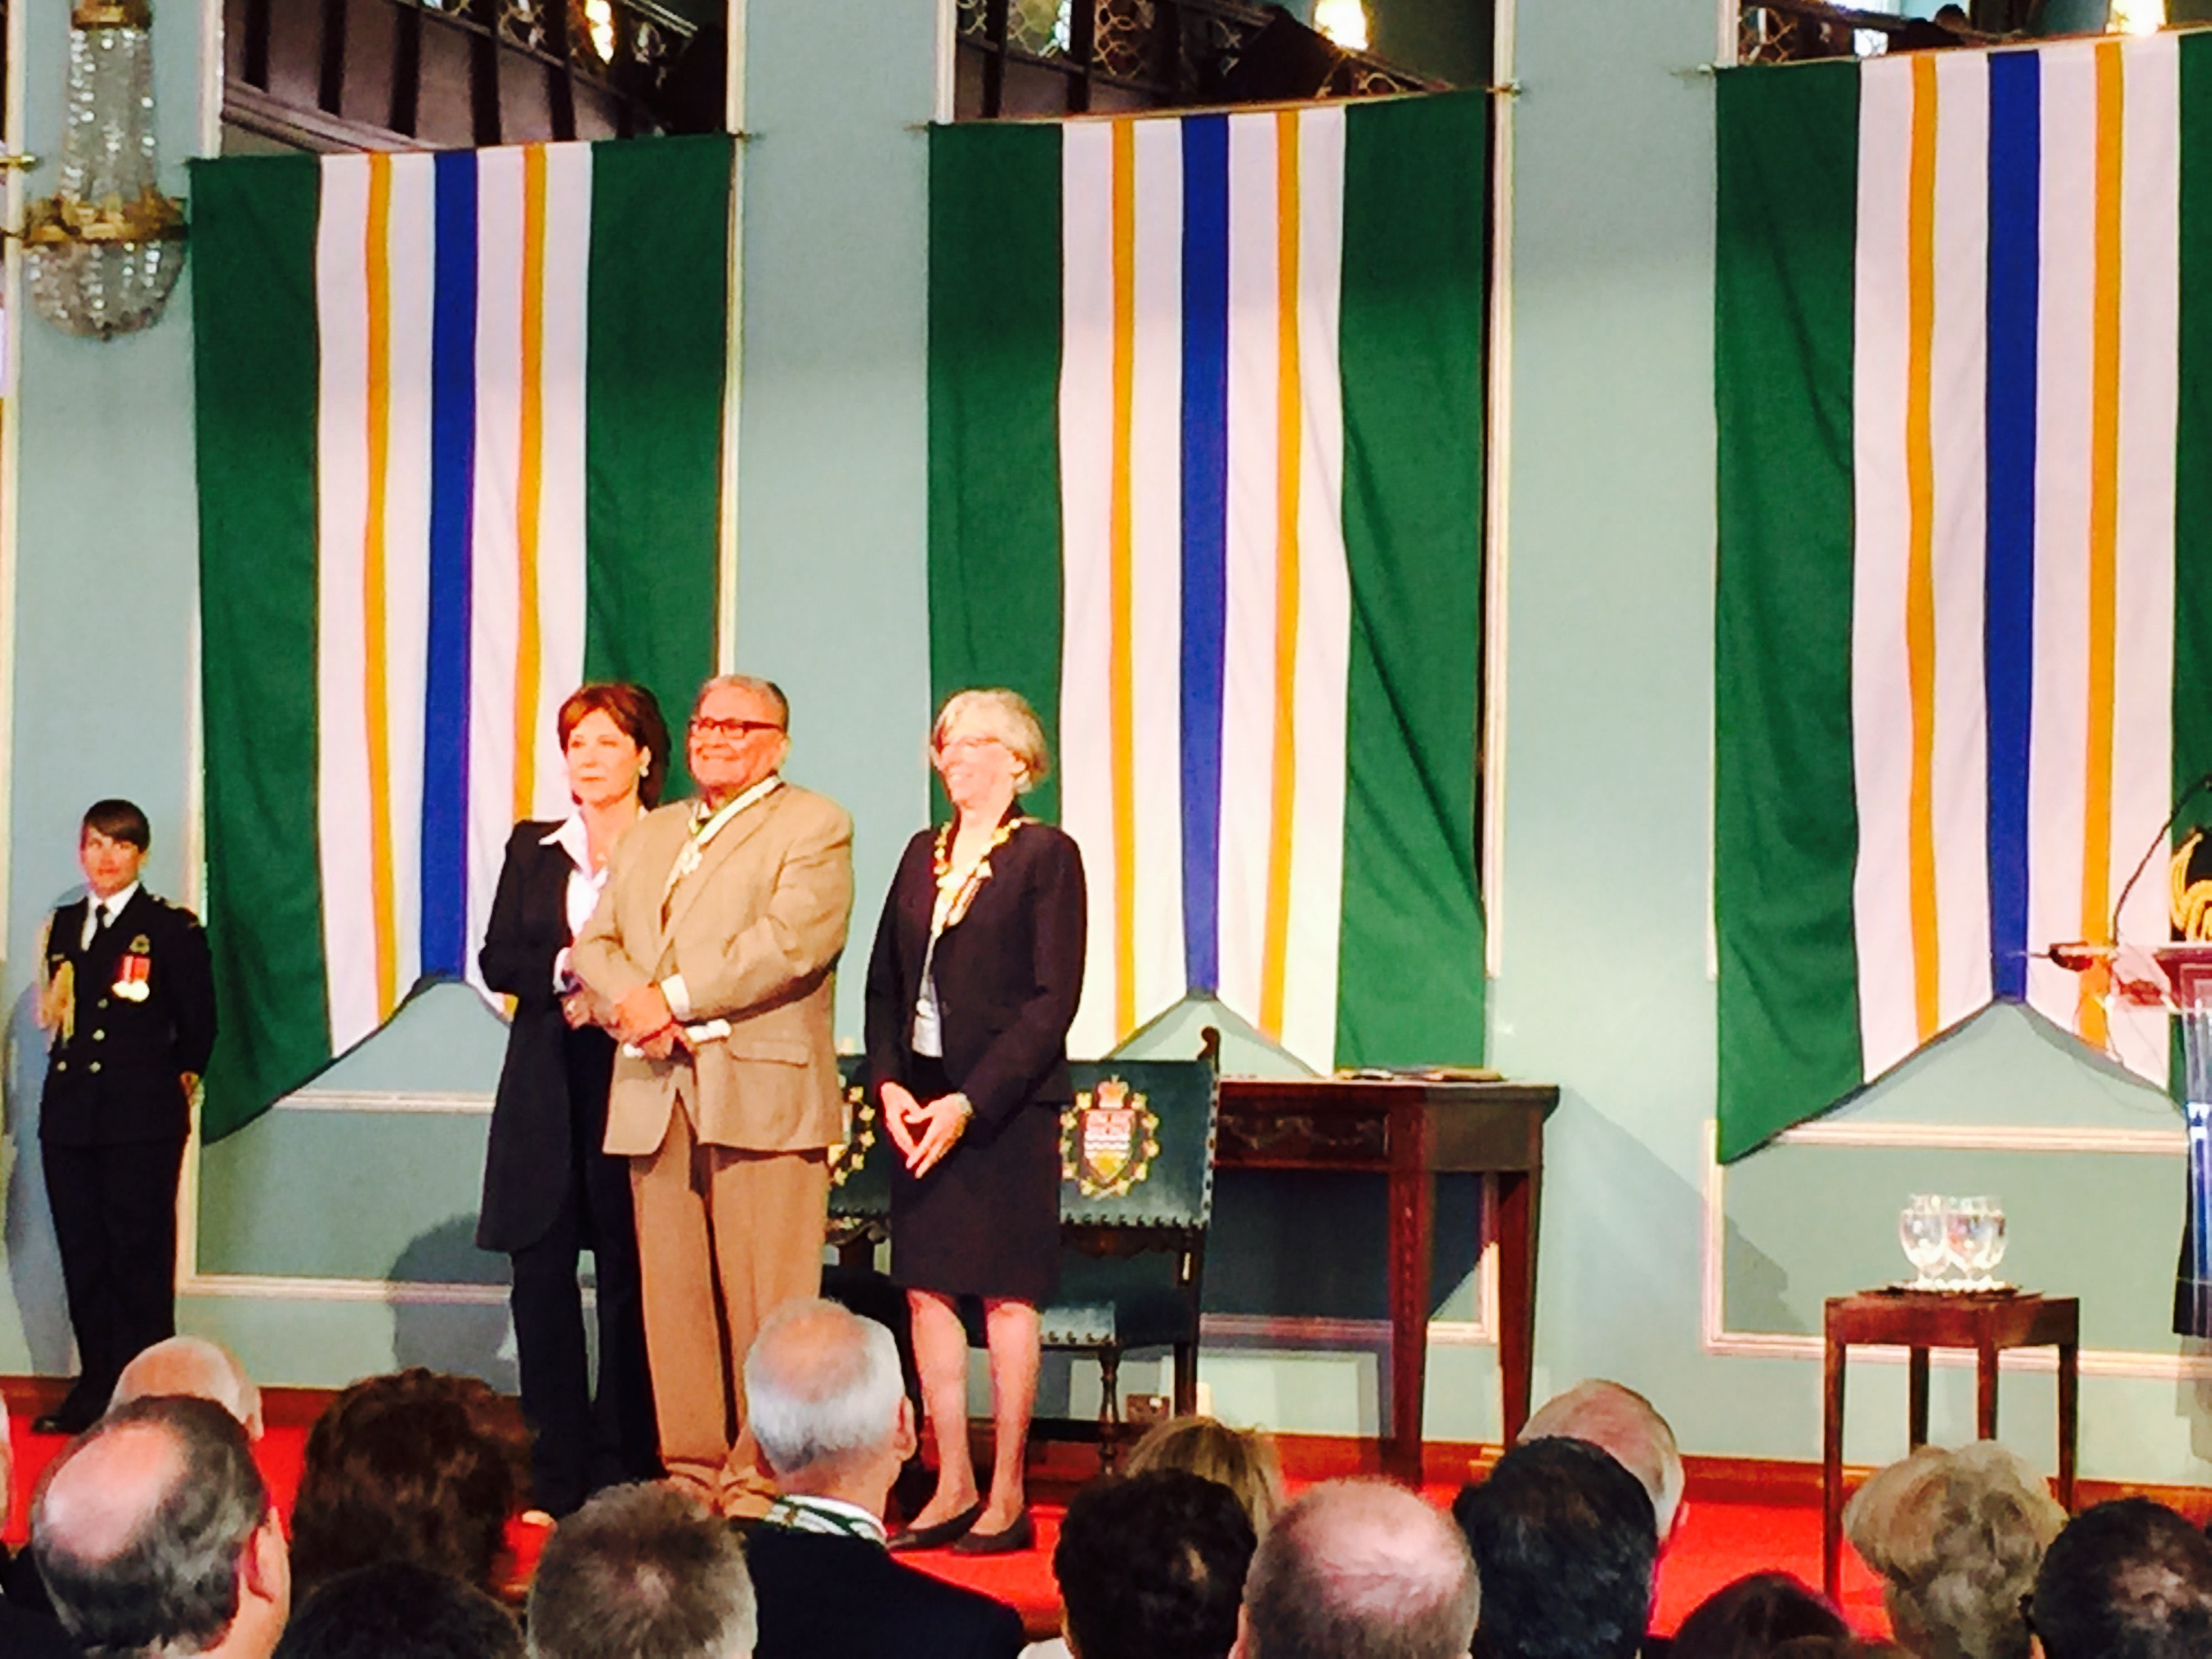 Chief Robert Joseph BC Premier Christy Clark Judith Guichon Lieutenant Governor of BC